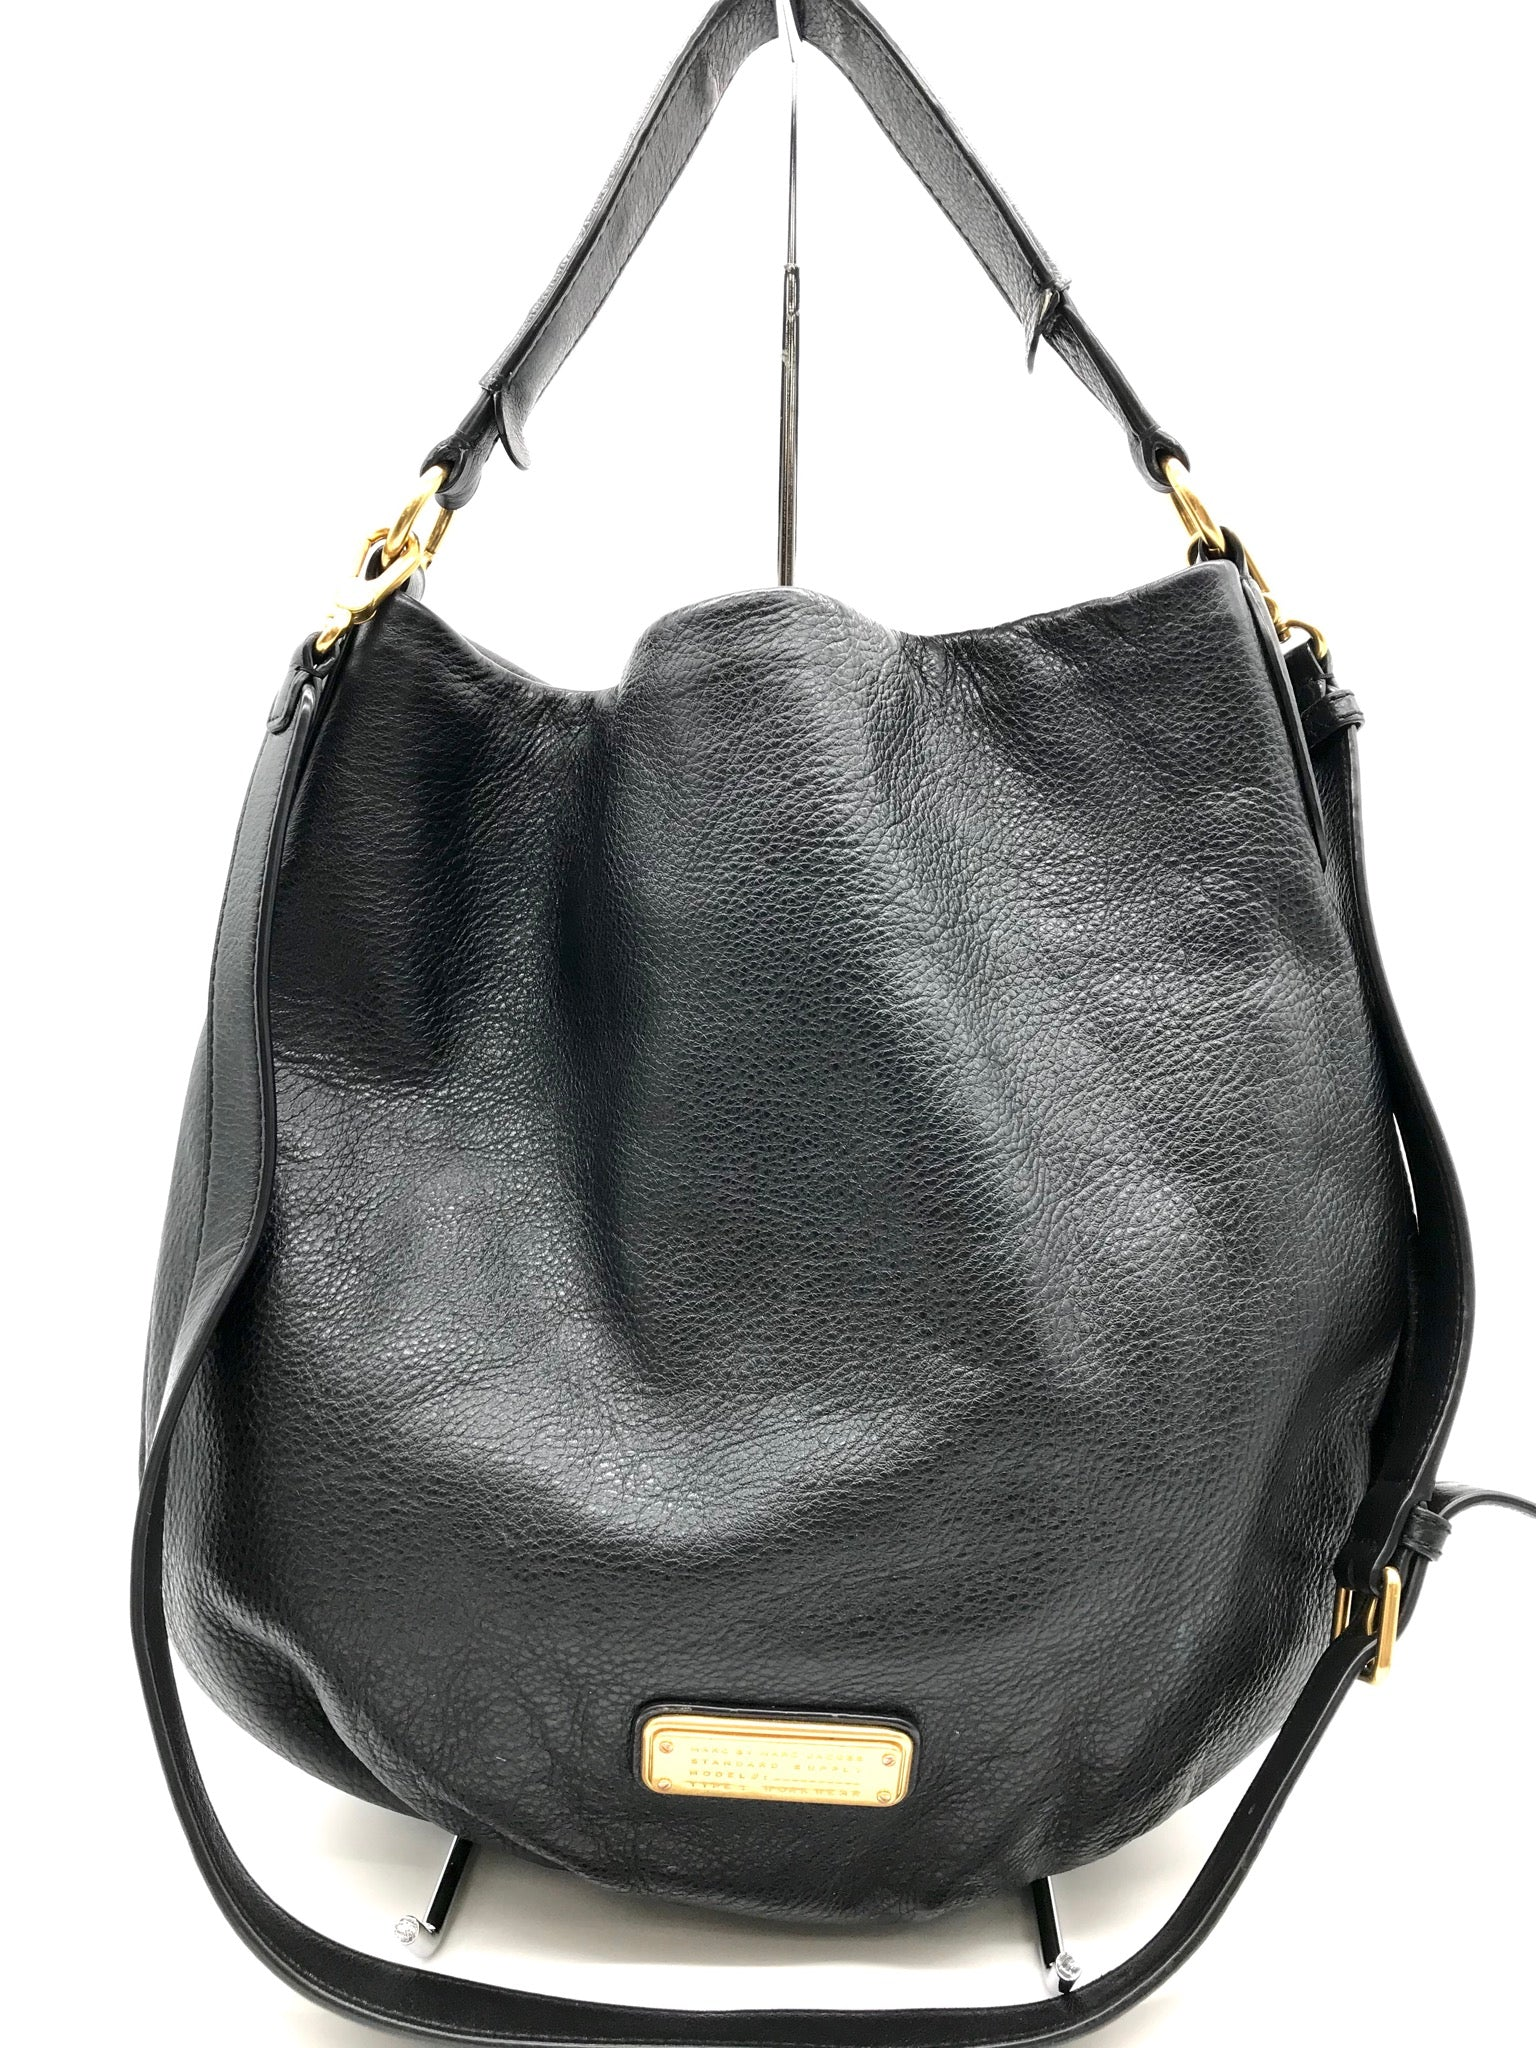 Primary Photo - BRAND: MARC BY MARC JACOBS <BR>STYLE: HANDBAG DESIGNER <BR>COLOR: LEATHER <BR>SIZE: LARGE <BR>SKU: 262-26241-32891<BR>SOME MARKS INSIDE - AS IS<BR>DESIGNER BRAND - FINAL SALE